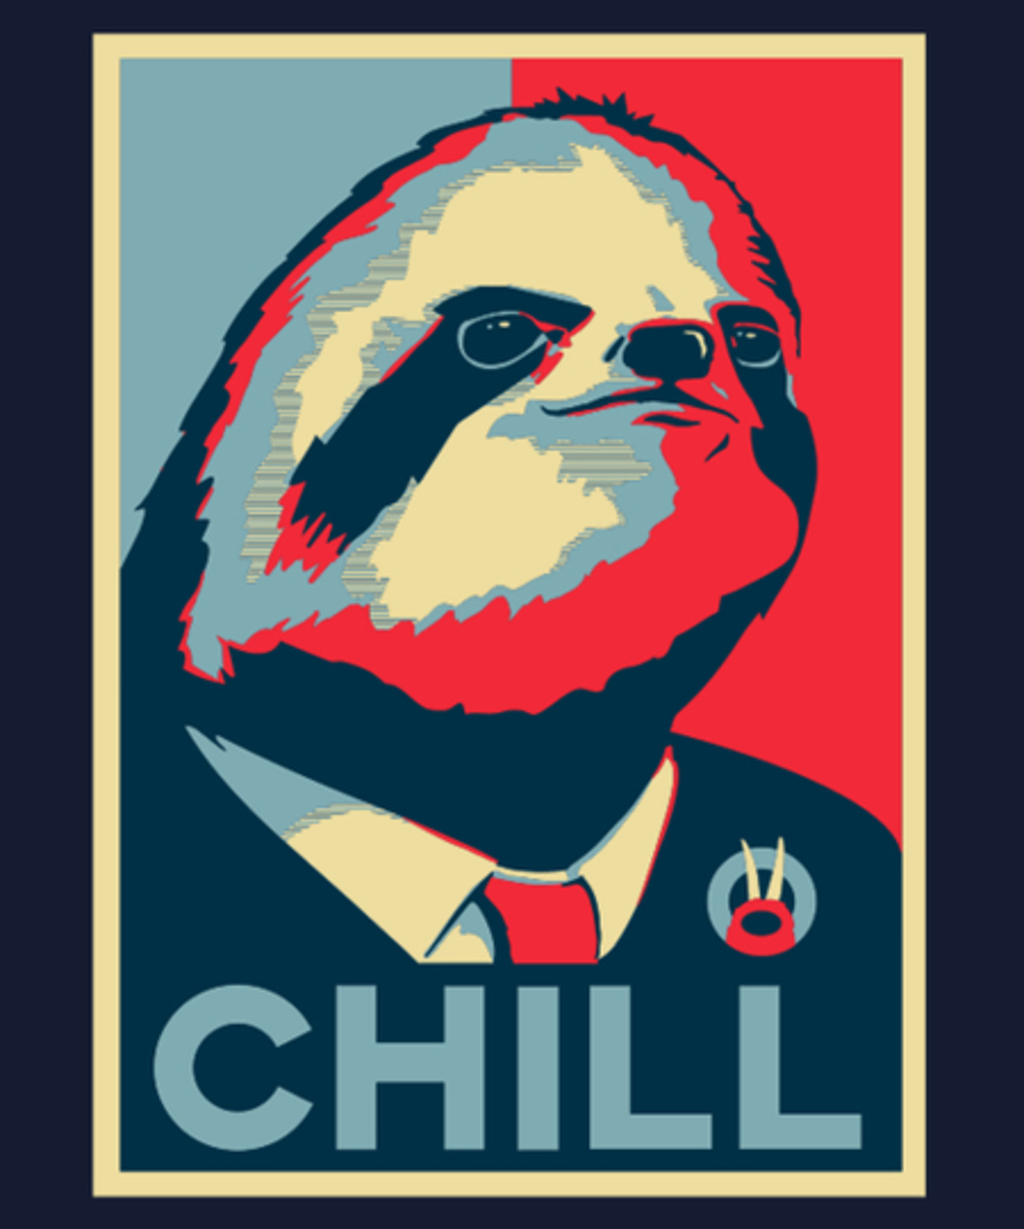 Qwertee: Sloth for President